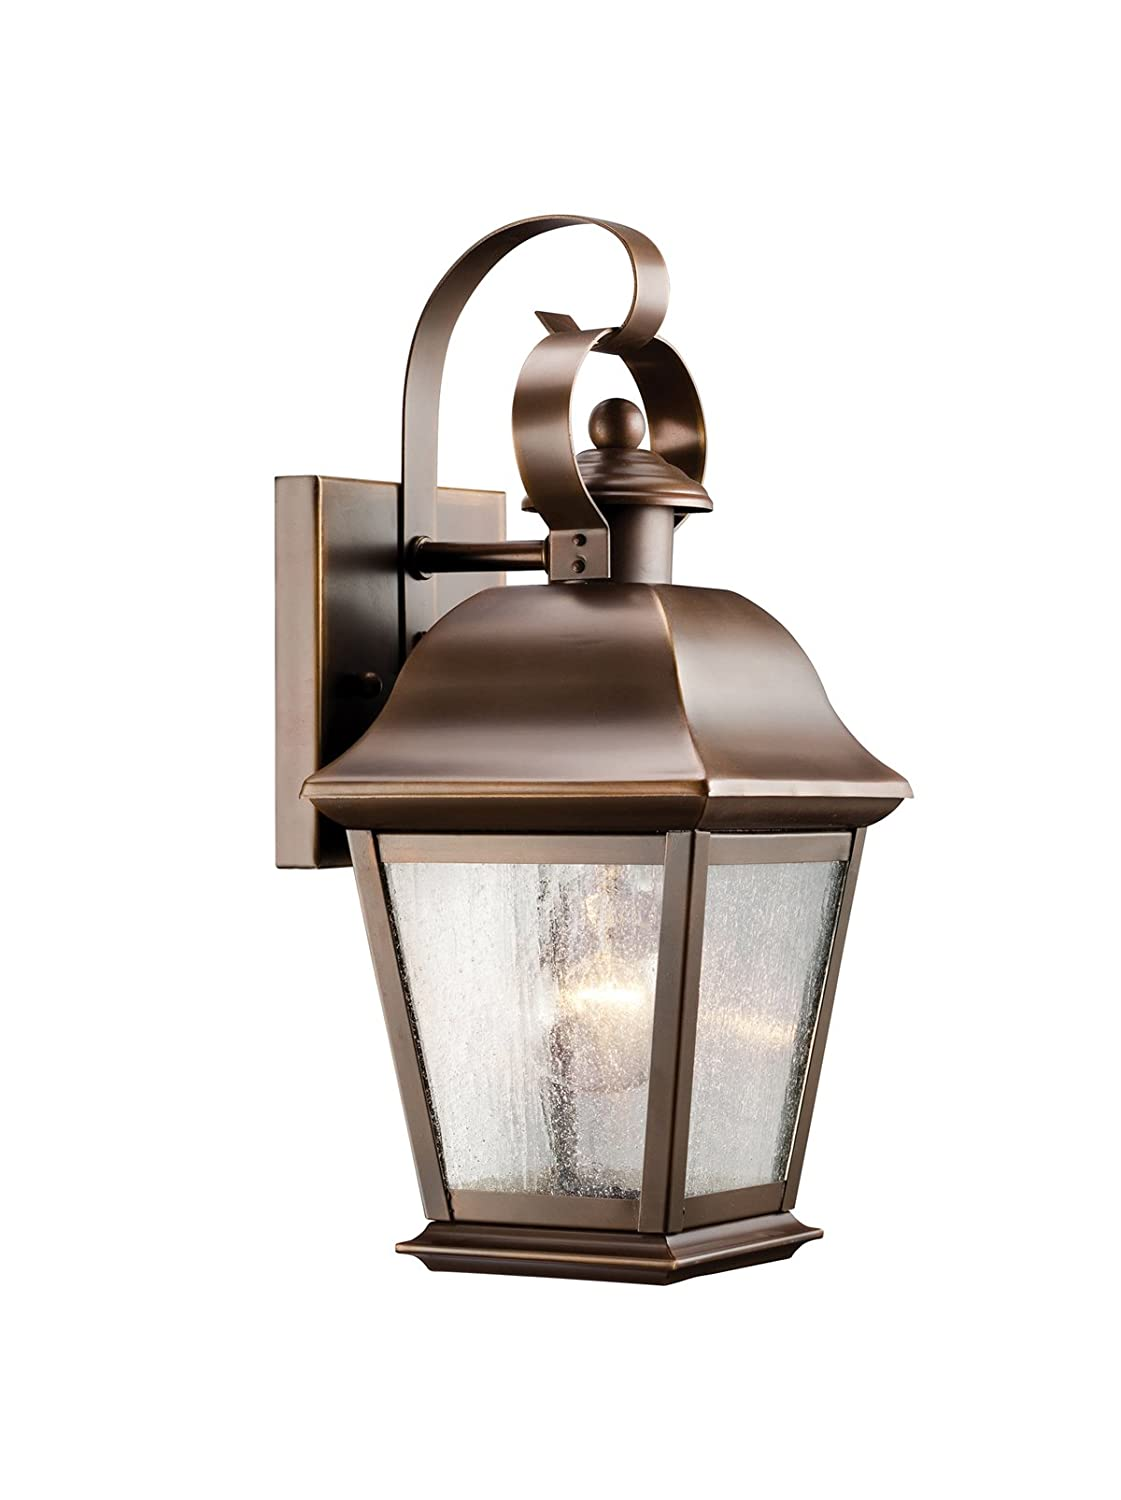 Kichler 9707oz mount vernon solid brass outdoor wall sconce lighting 100 total watts olde bronze wall porch lights amazon com